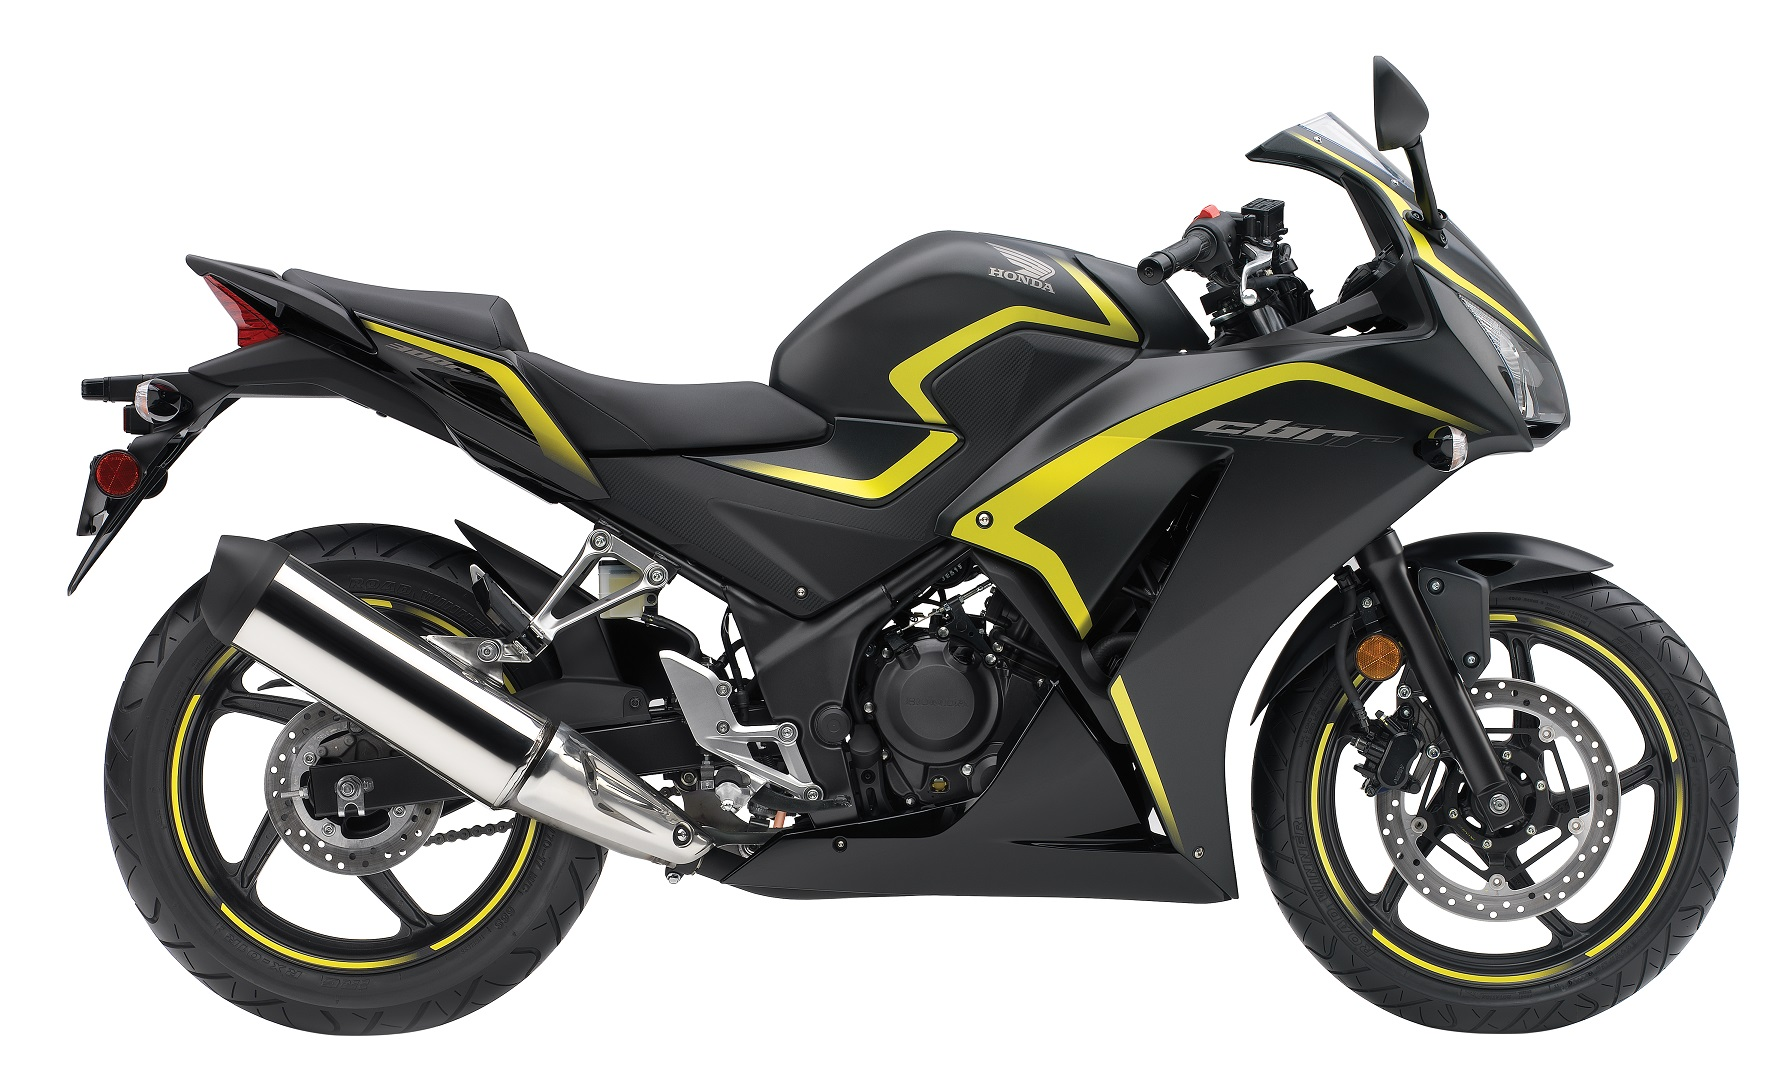 CBR300R on sale in August